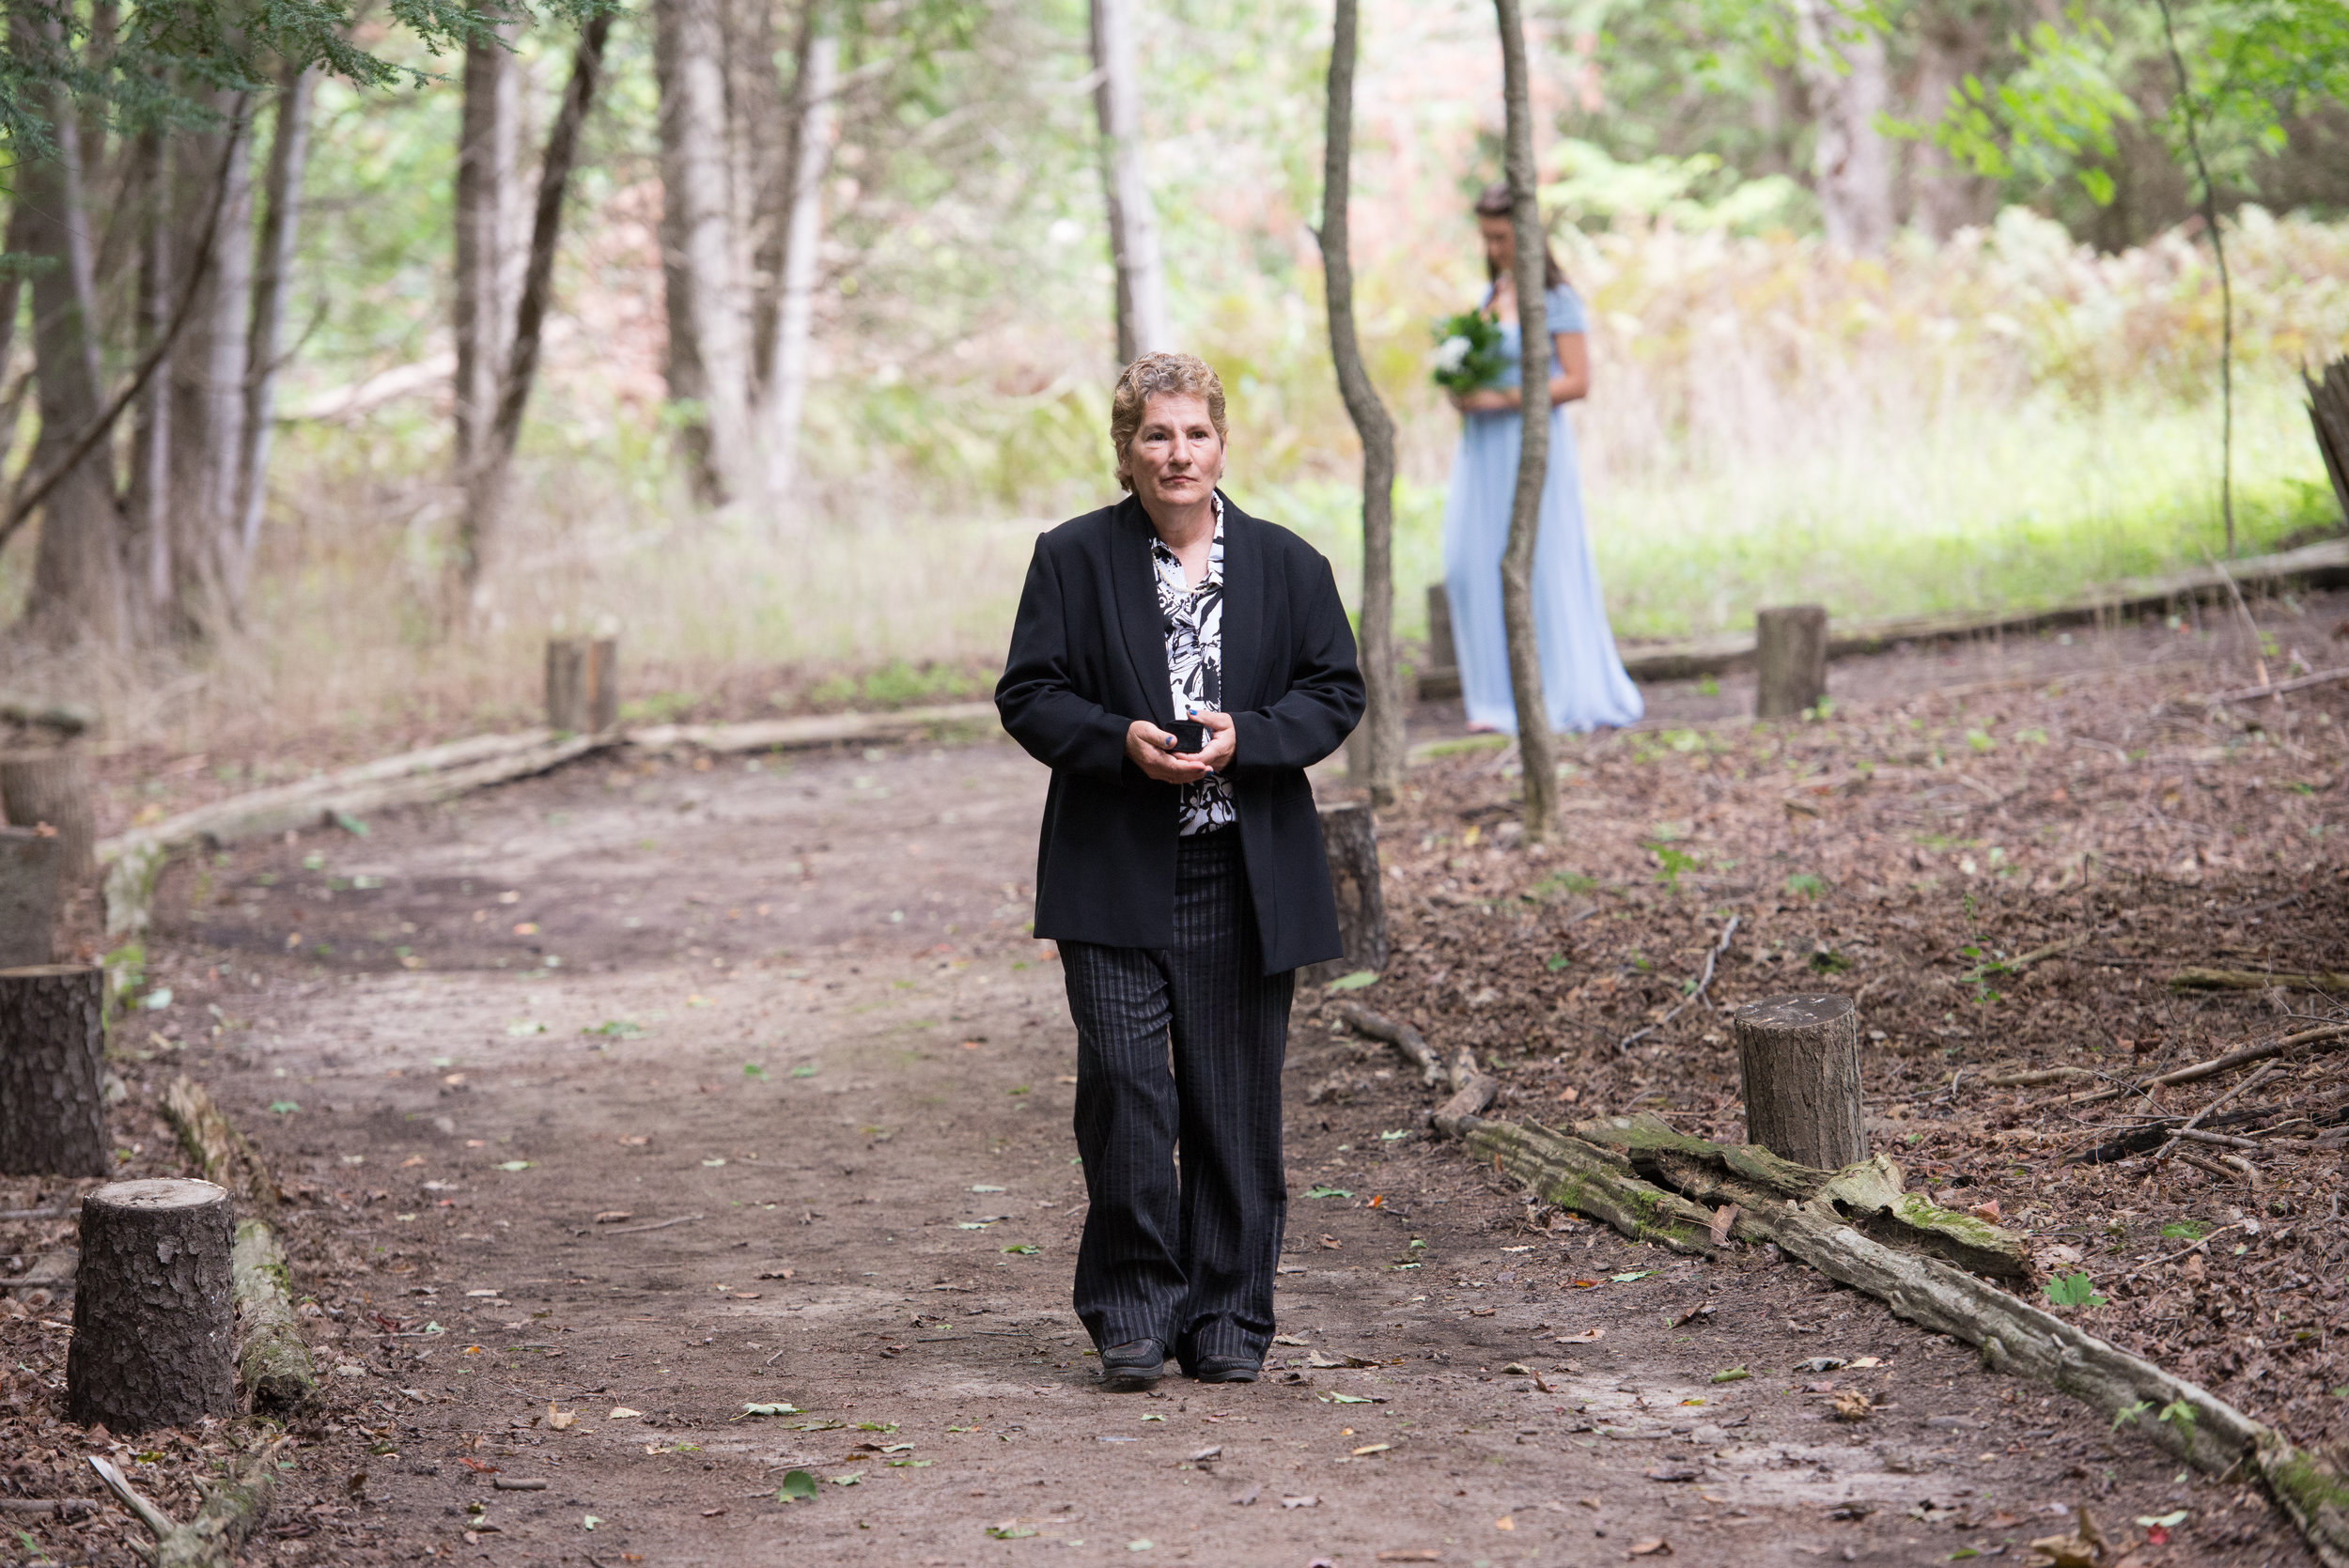 Here comes the ring bearer! // Wedding photos by Karmel Kreative // Plant Based Bride